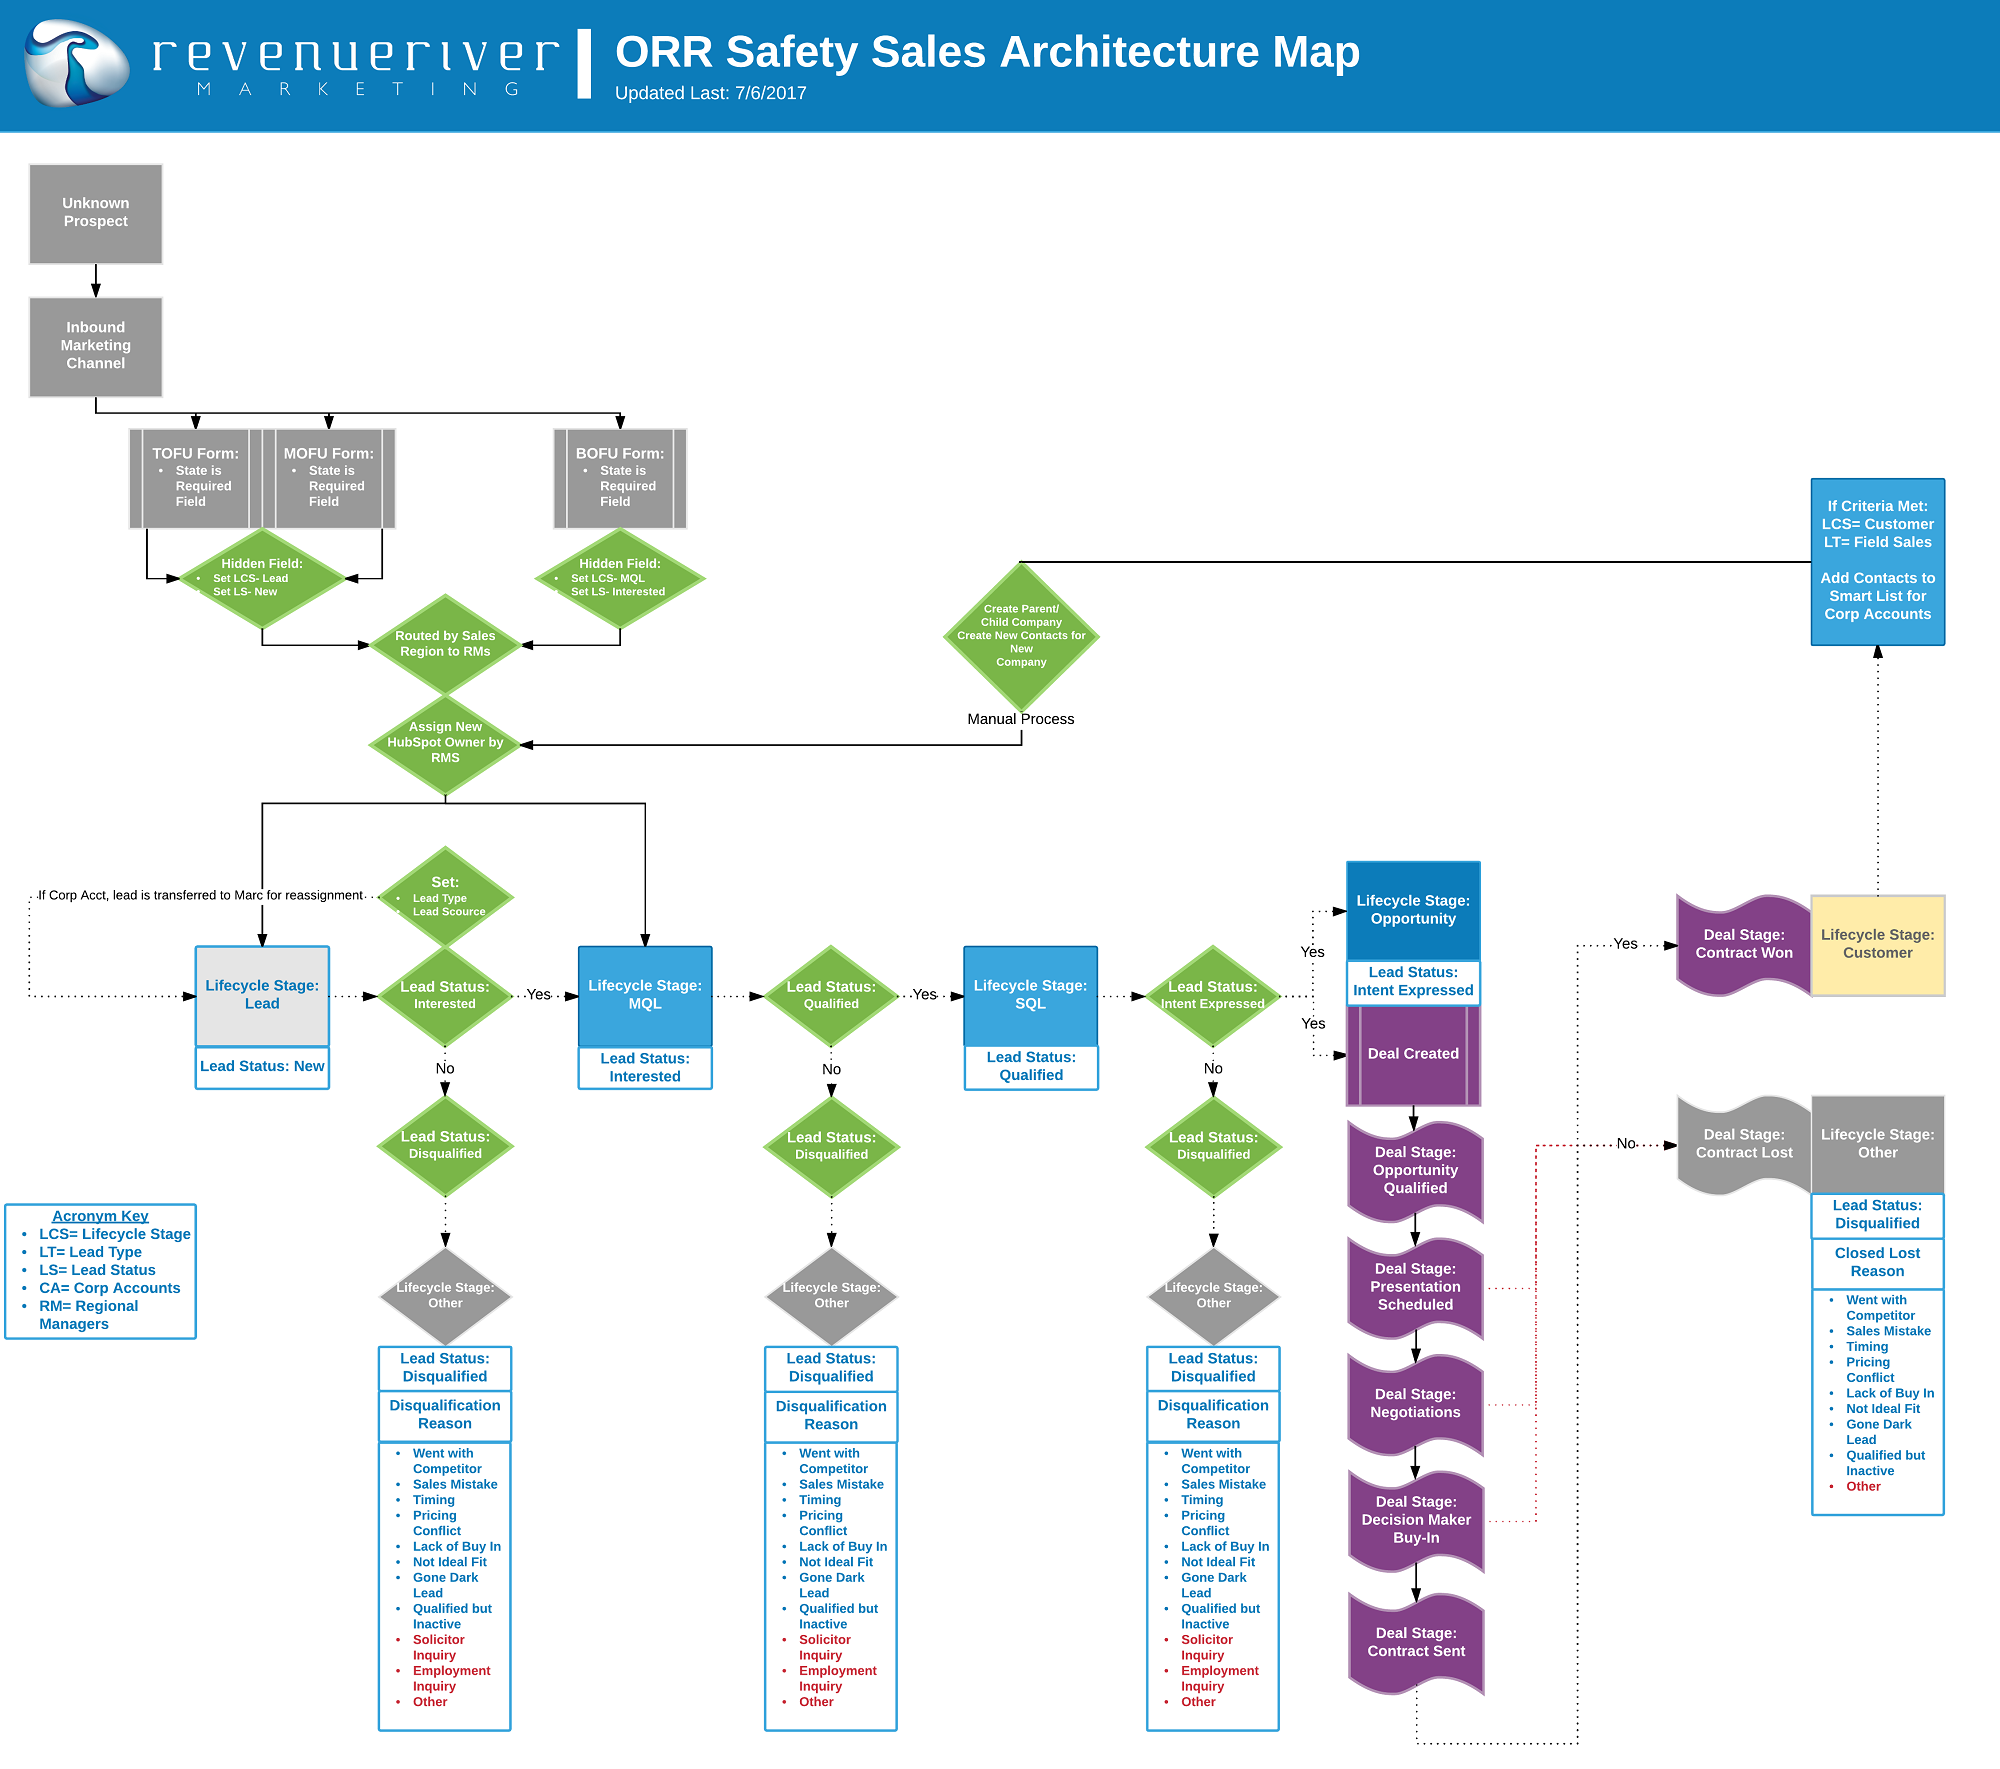 ORR Safety Sales Architecture Map